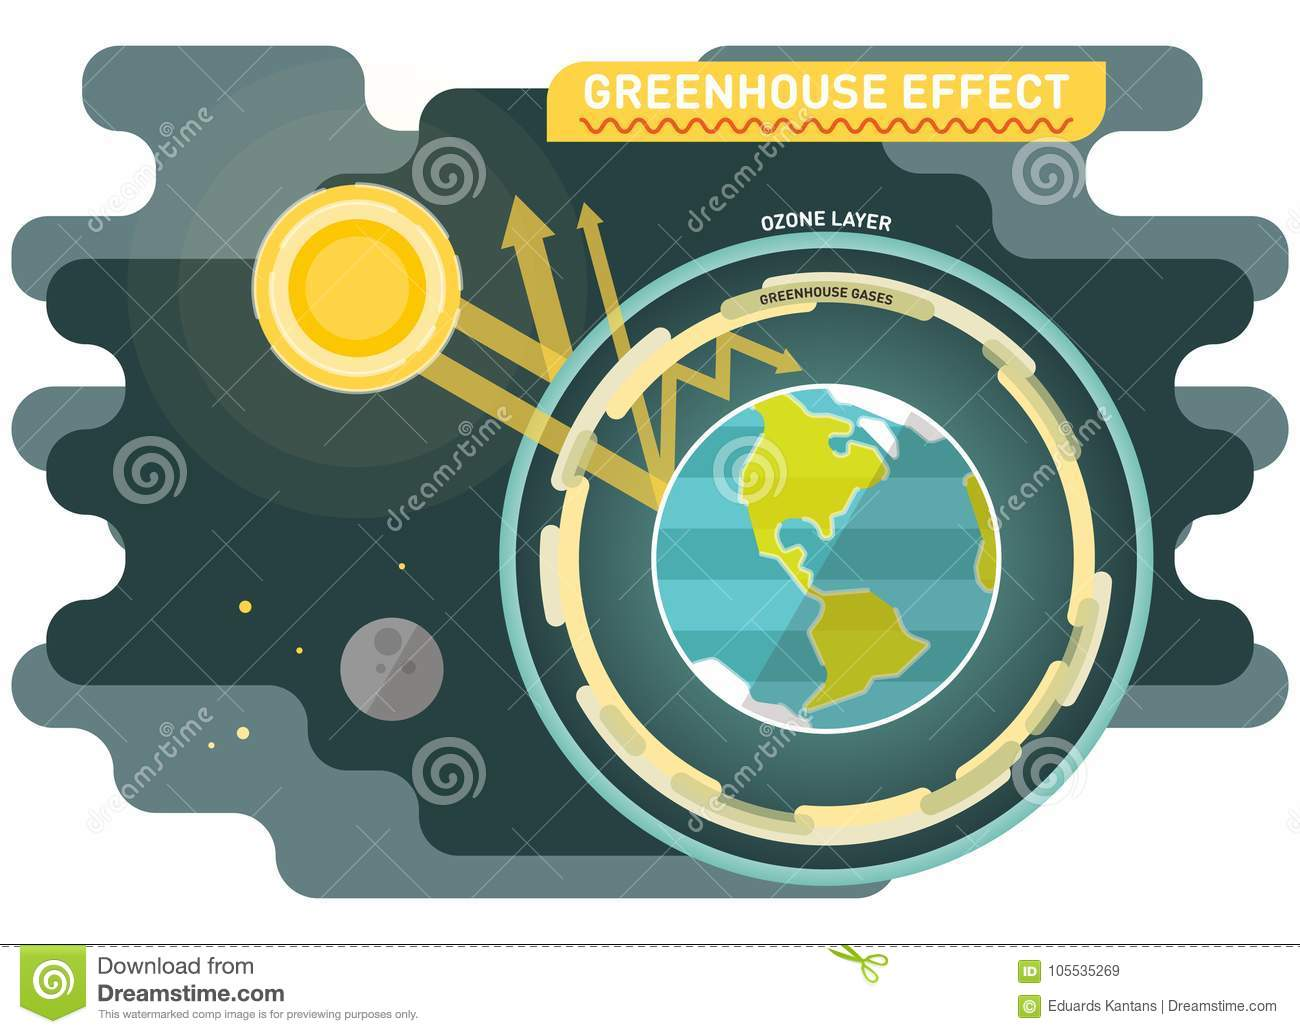 hight resolution of greenhouse effect diagram graphic vector illustration